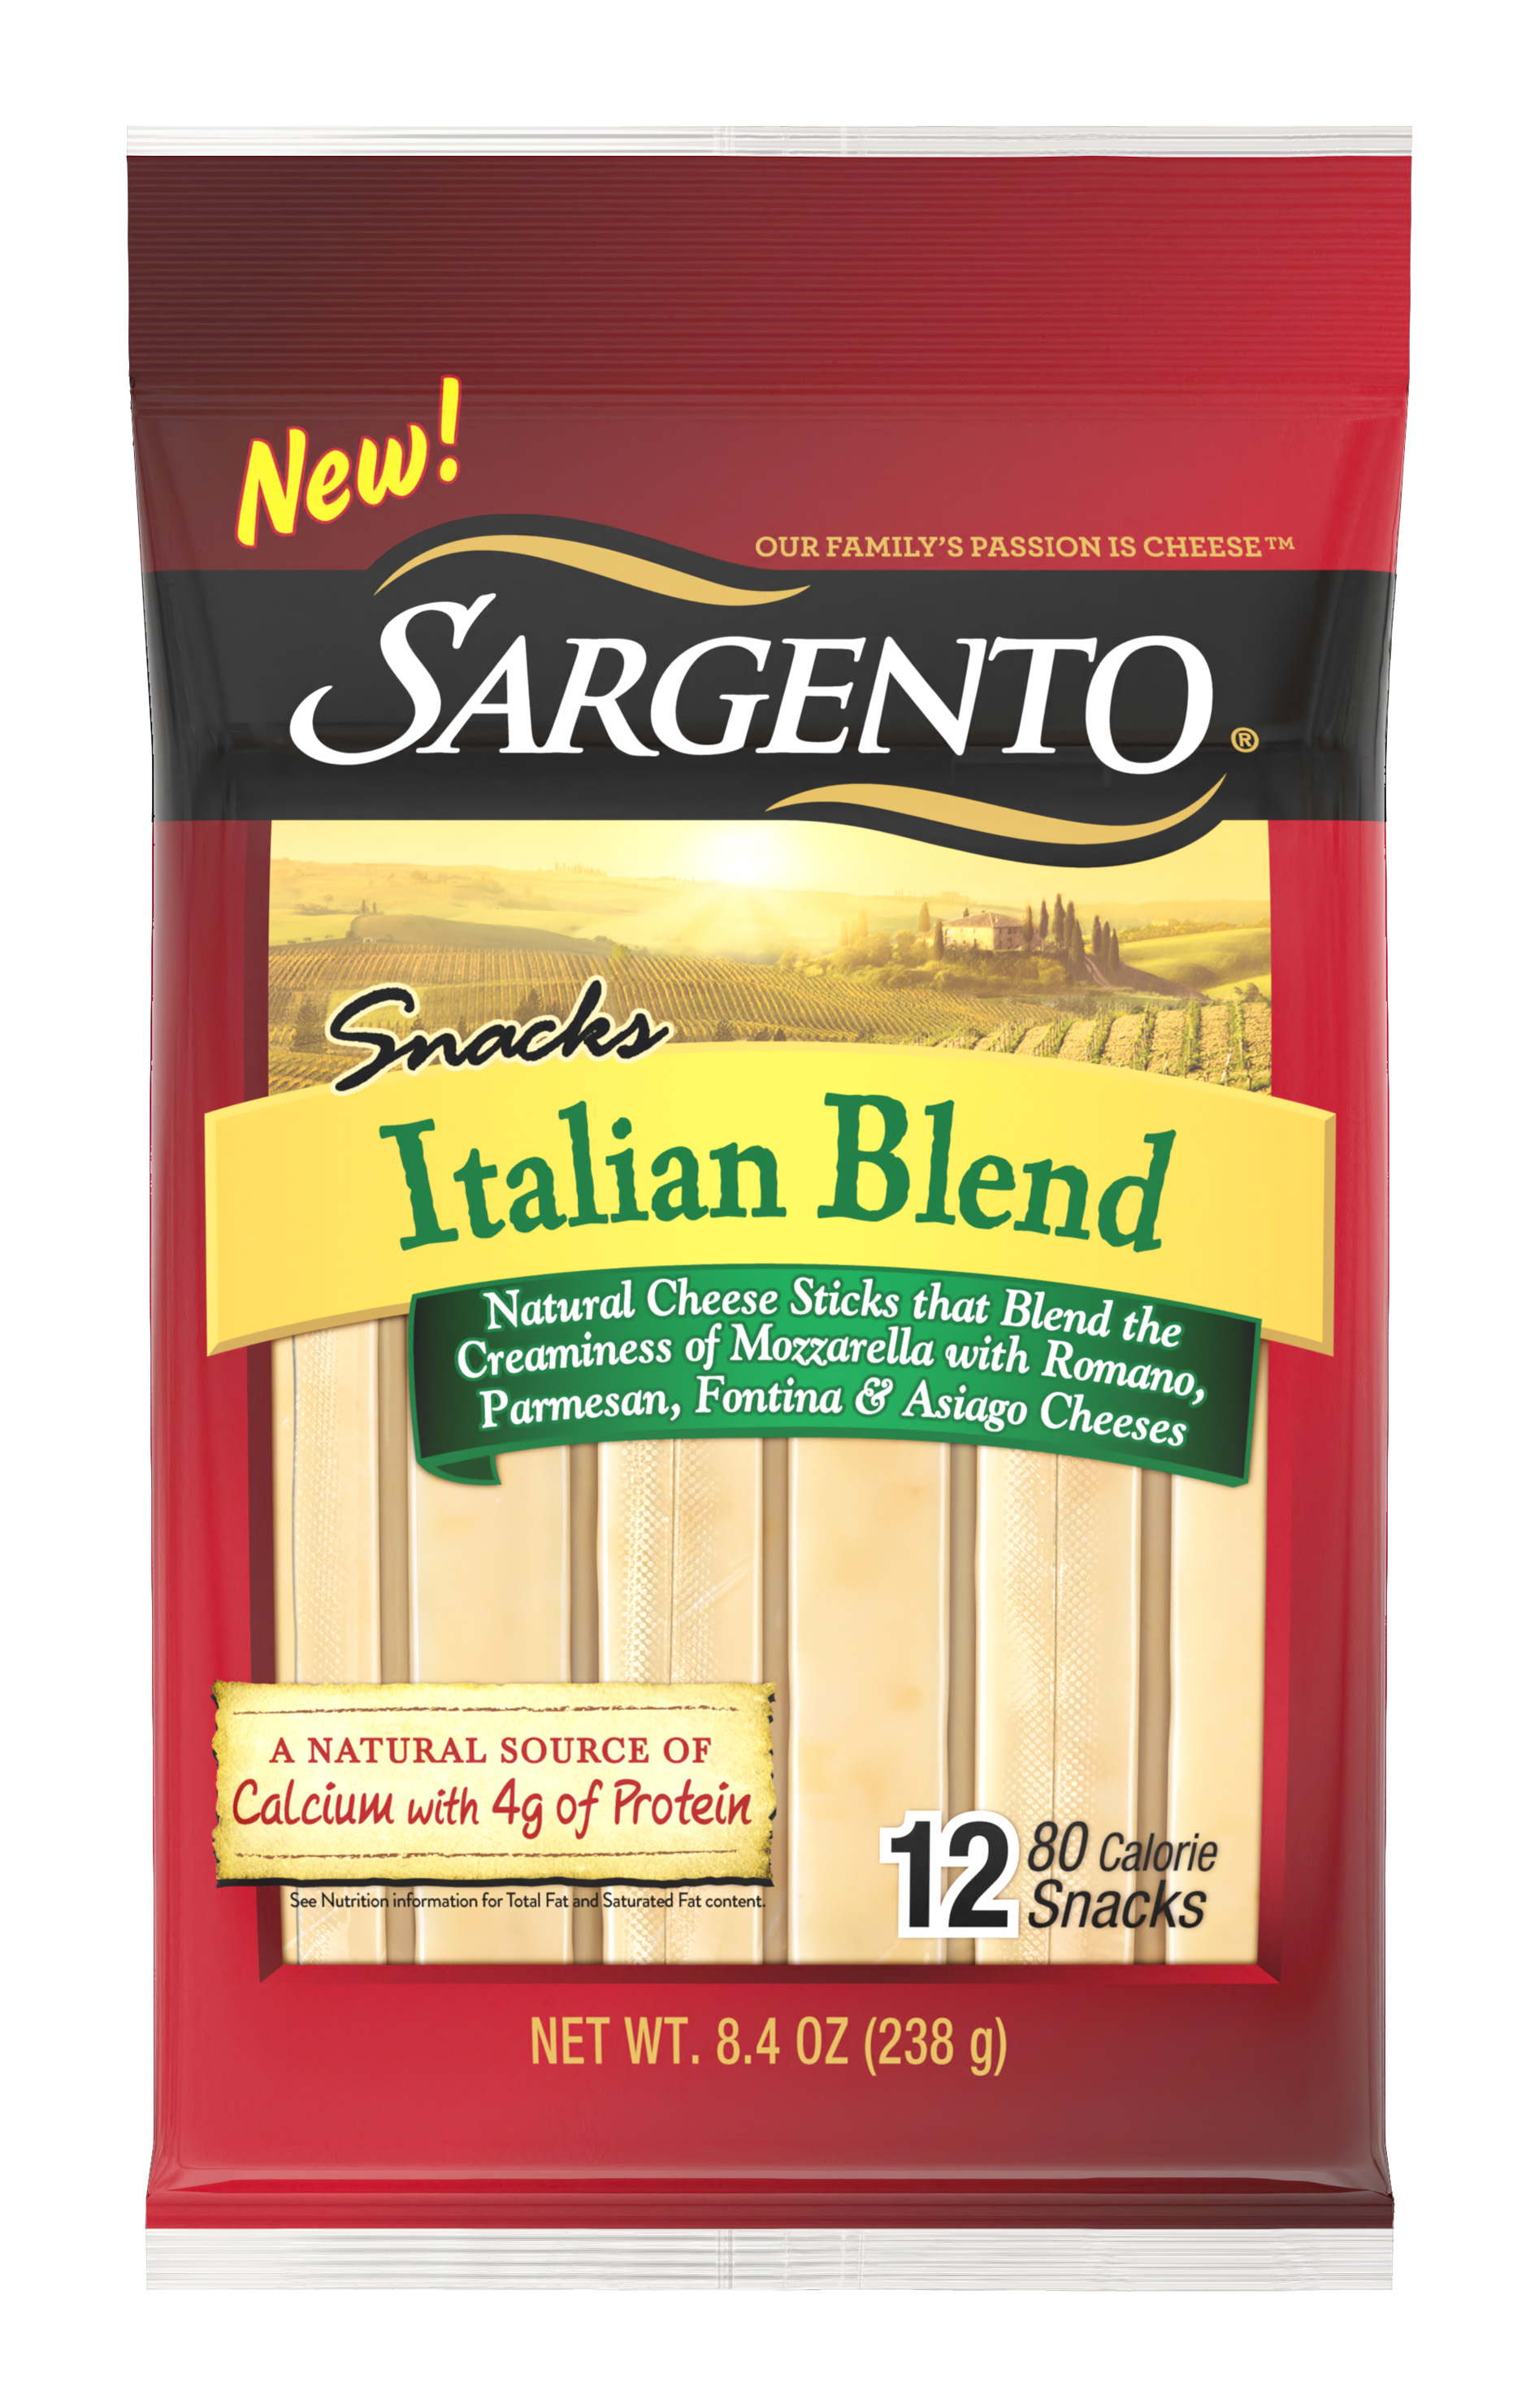 Sargento® Italian Blend Cheese Sticks